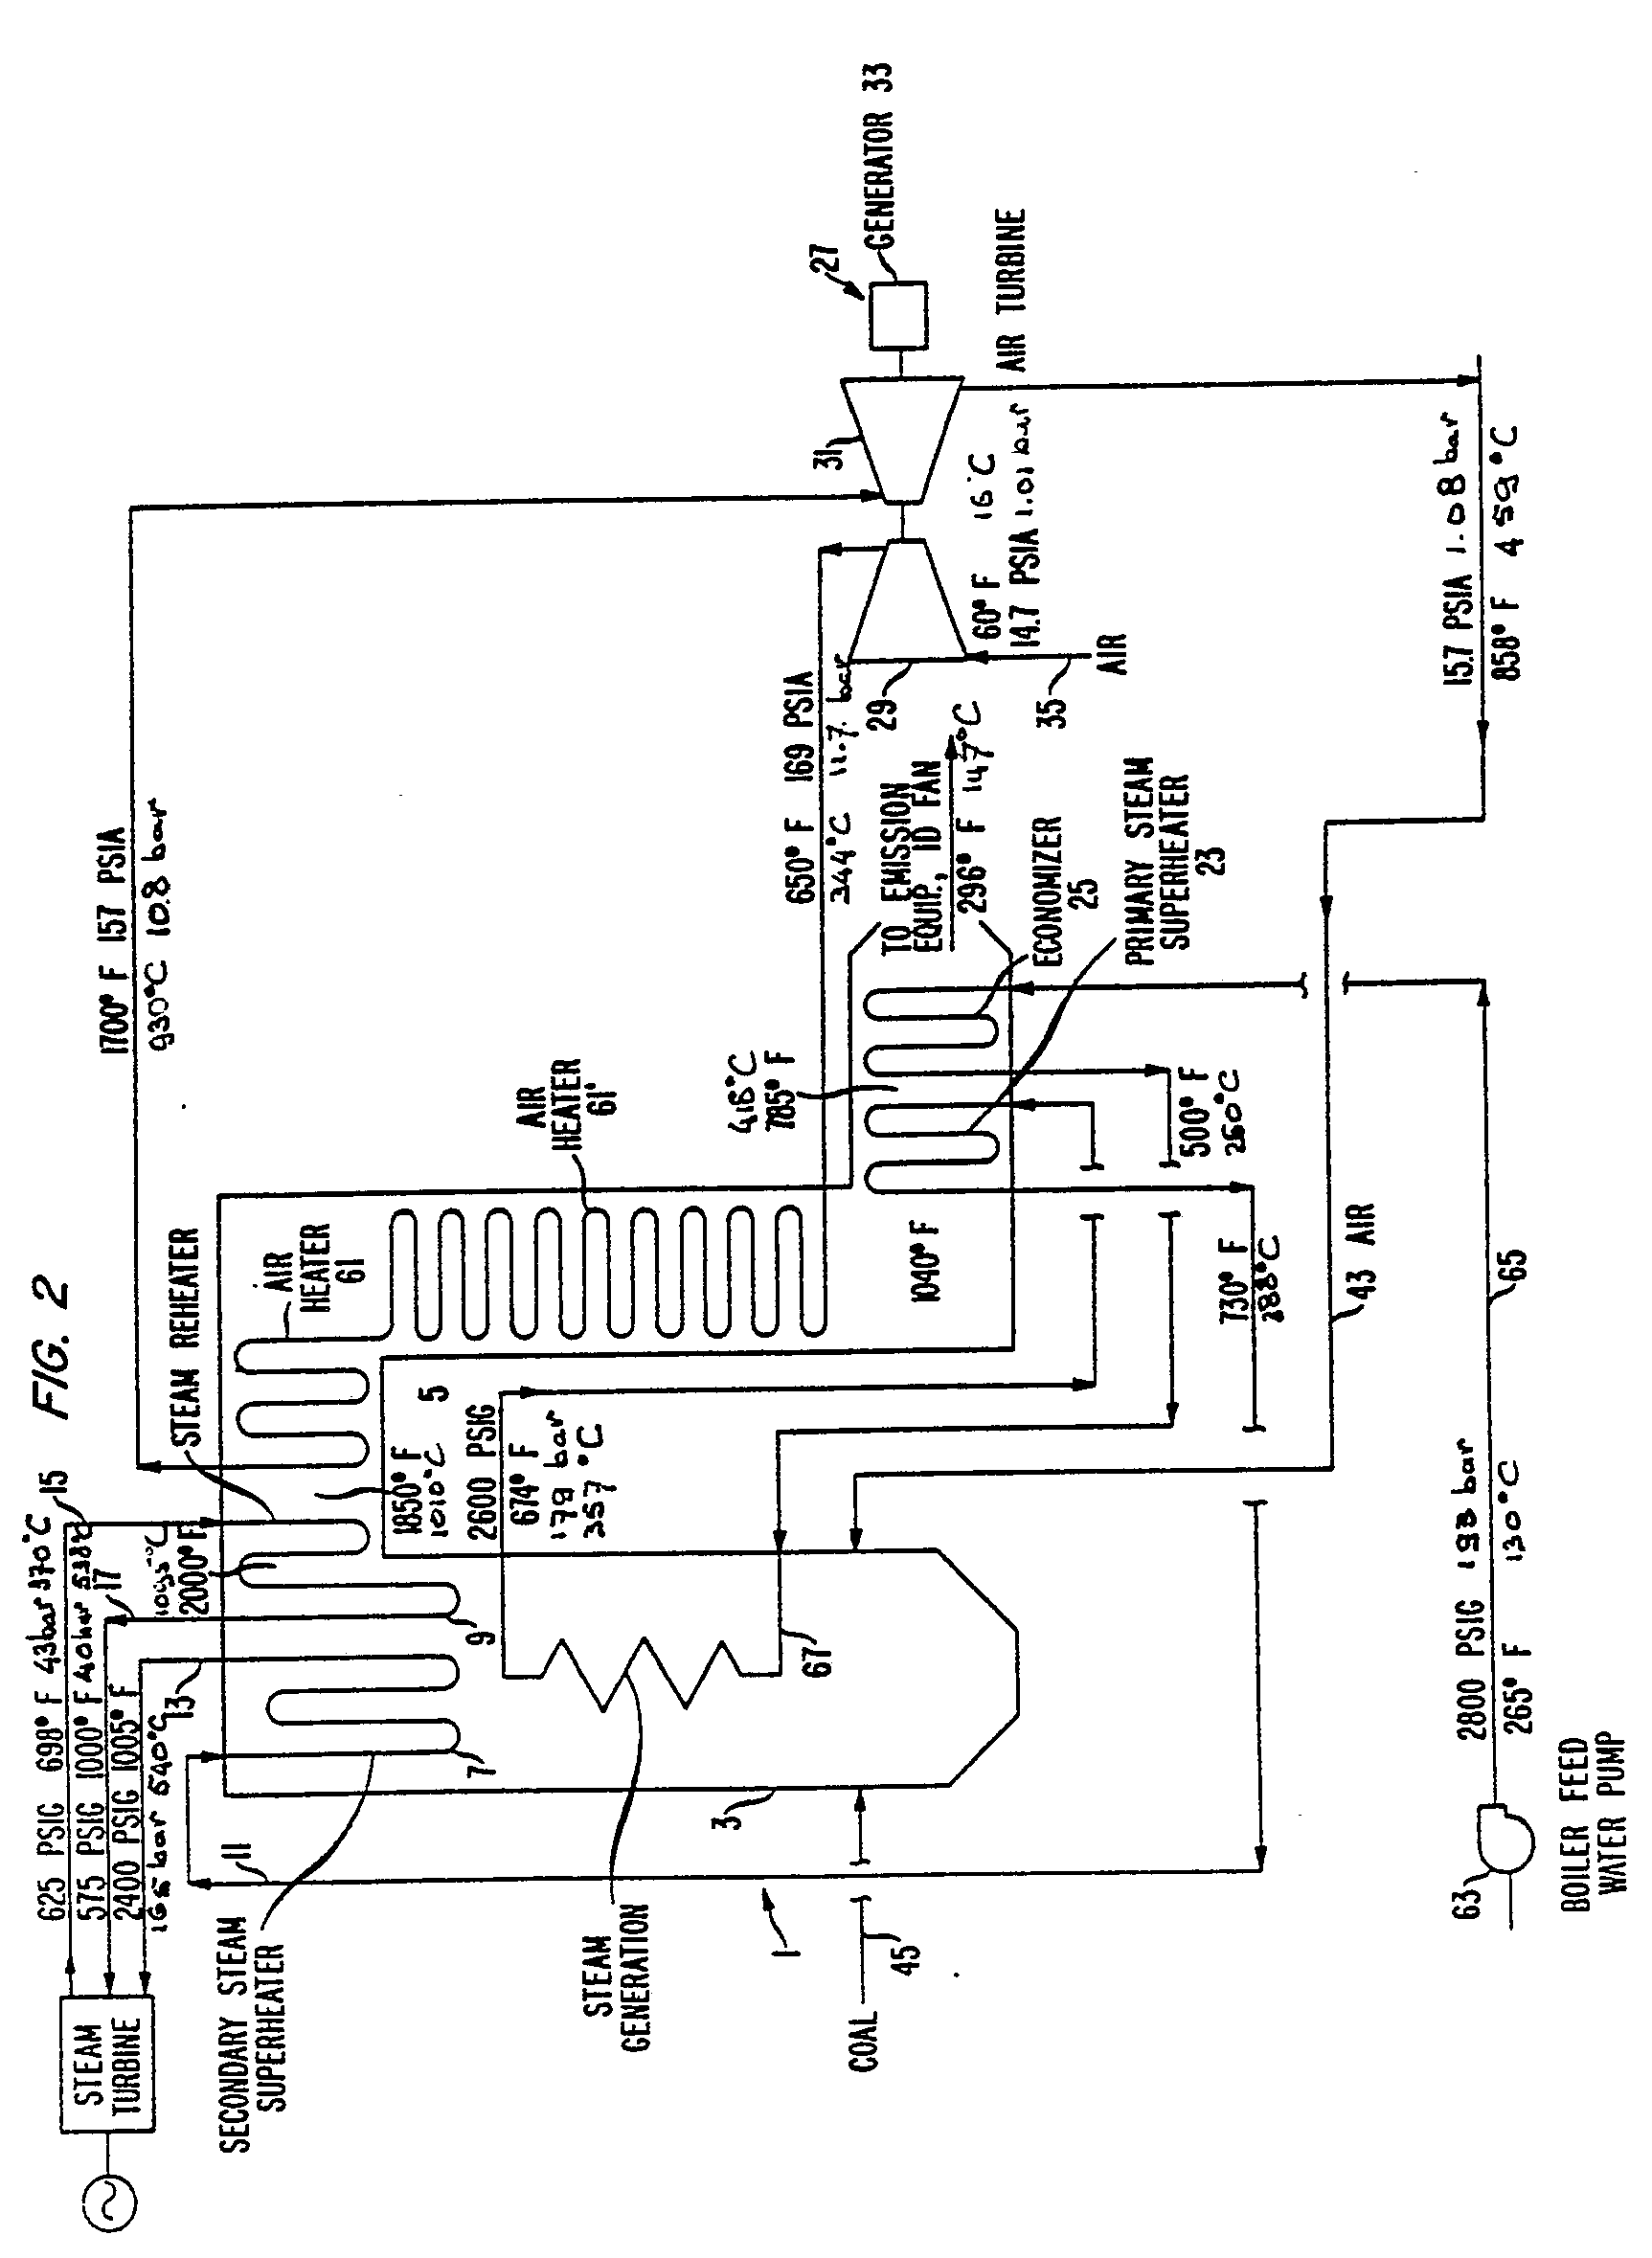 Wiring Diagram Oldsmobile Achieva